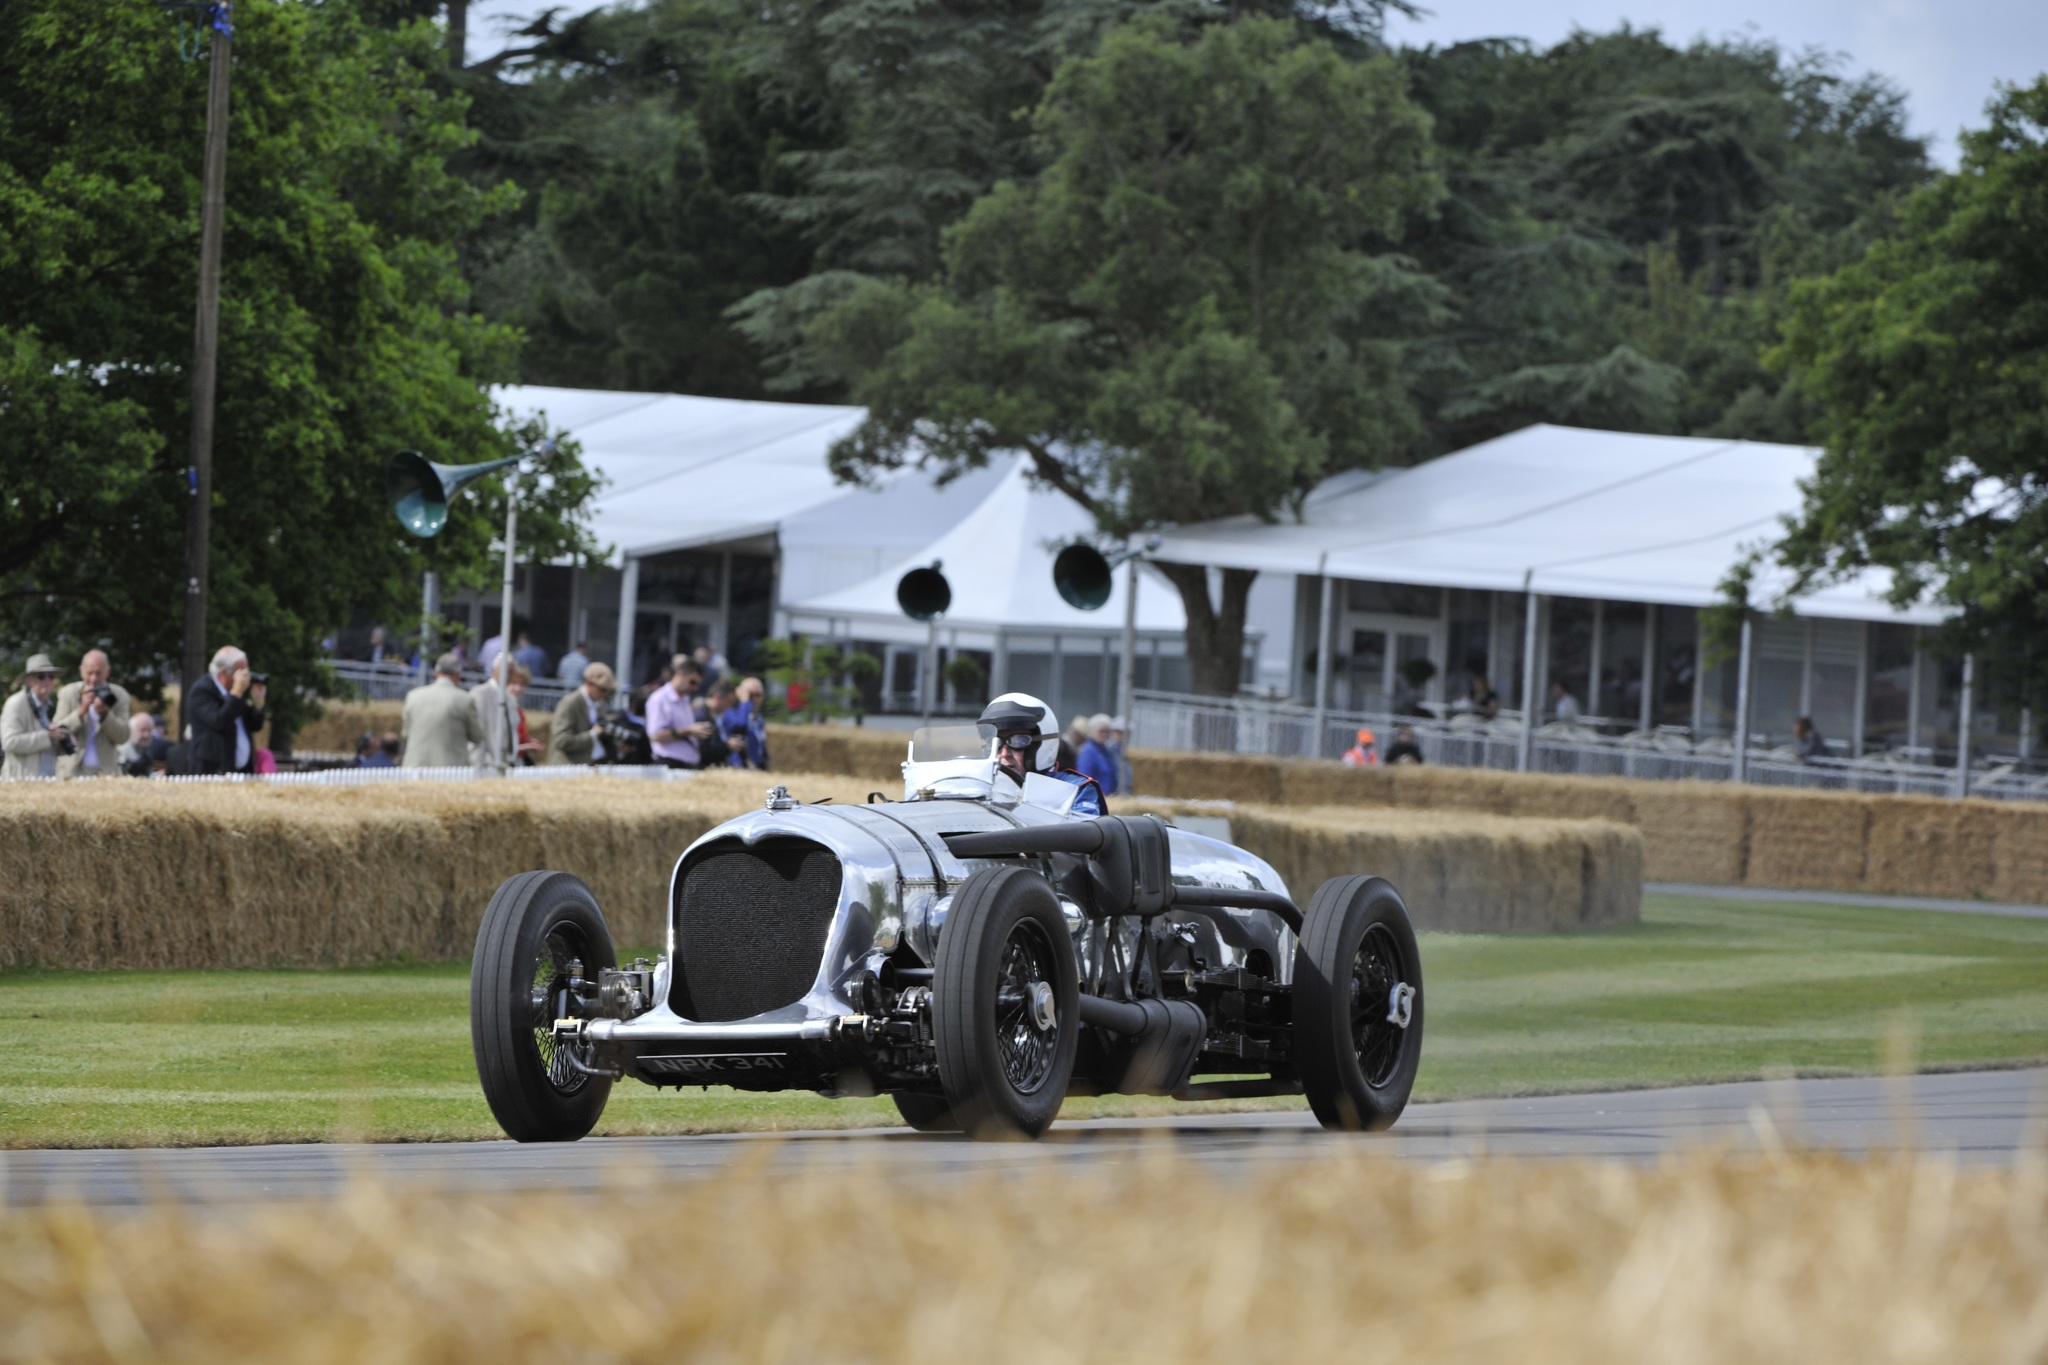 One of the pride and joys of British motoring was and still is this curious looking 1934 Napier-Railton. The nation's love for this car enabled the BDRC to secure 800 000 GBP by donation to keep it as a permanent fixture in the Brooklands Museum. This is easily the most fitting home since the Napier-Railton holds the Outer Circuit lap record of 143.44mph at Brooklands which was the center of British motoring before the war. In a sense, this is the 'Ultimate Brooklands Racecar'.